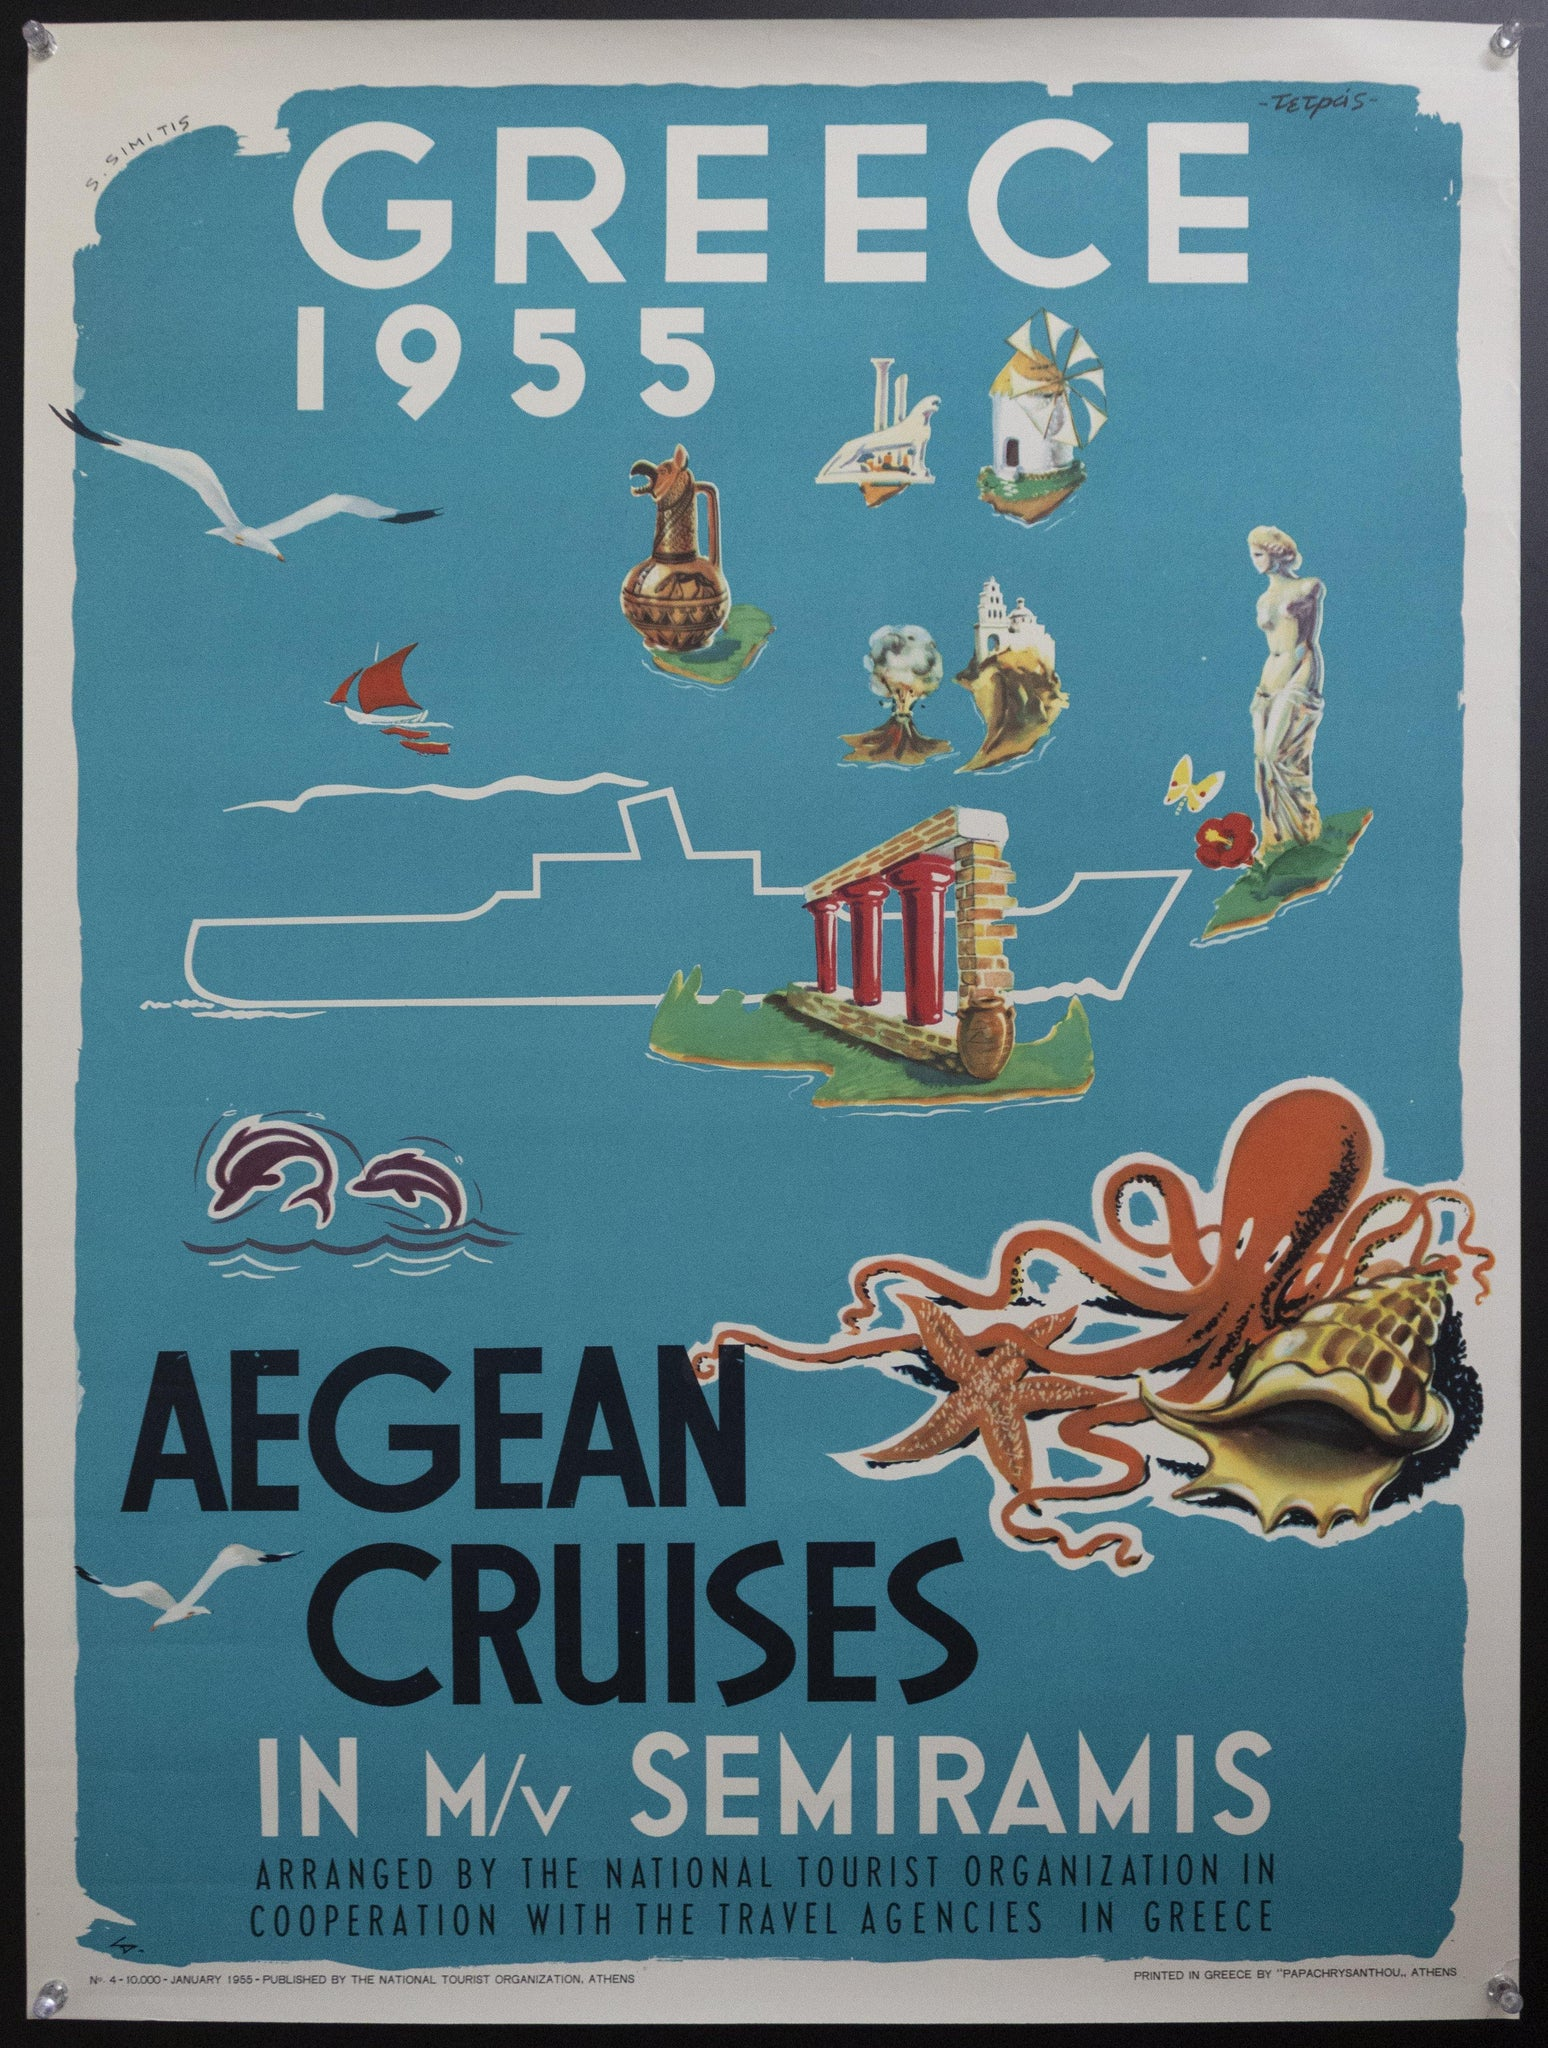 1955 Greece Aegean Cruises in M/v Semiramis by S. Simitis Greek Travel